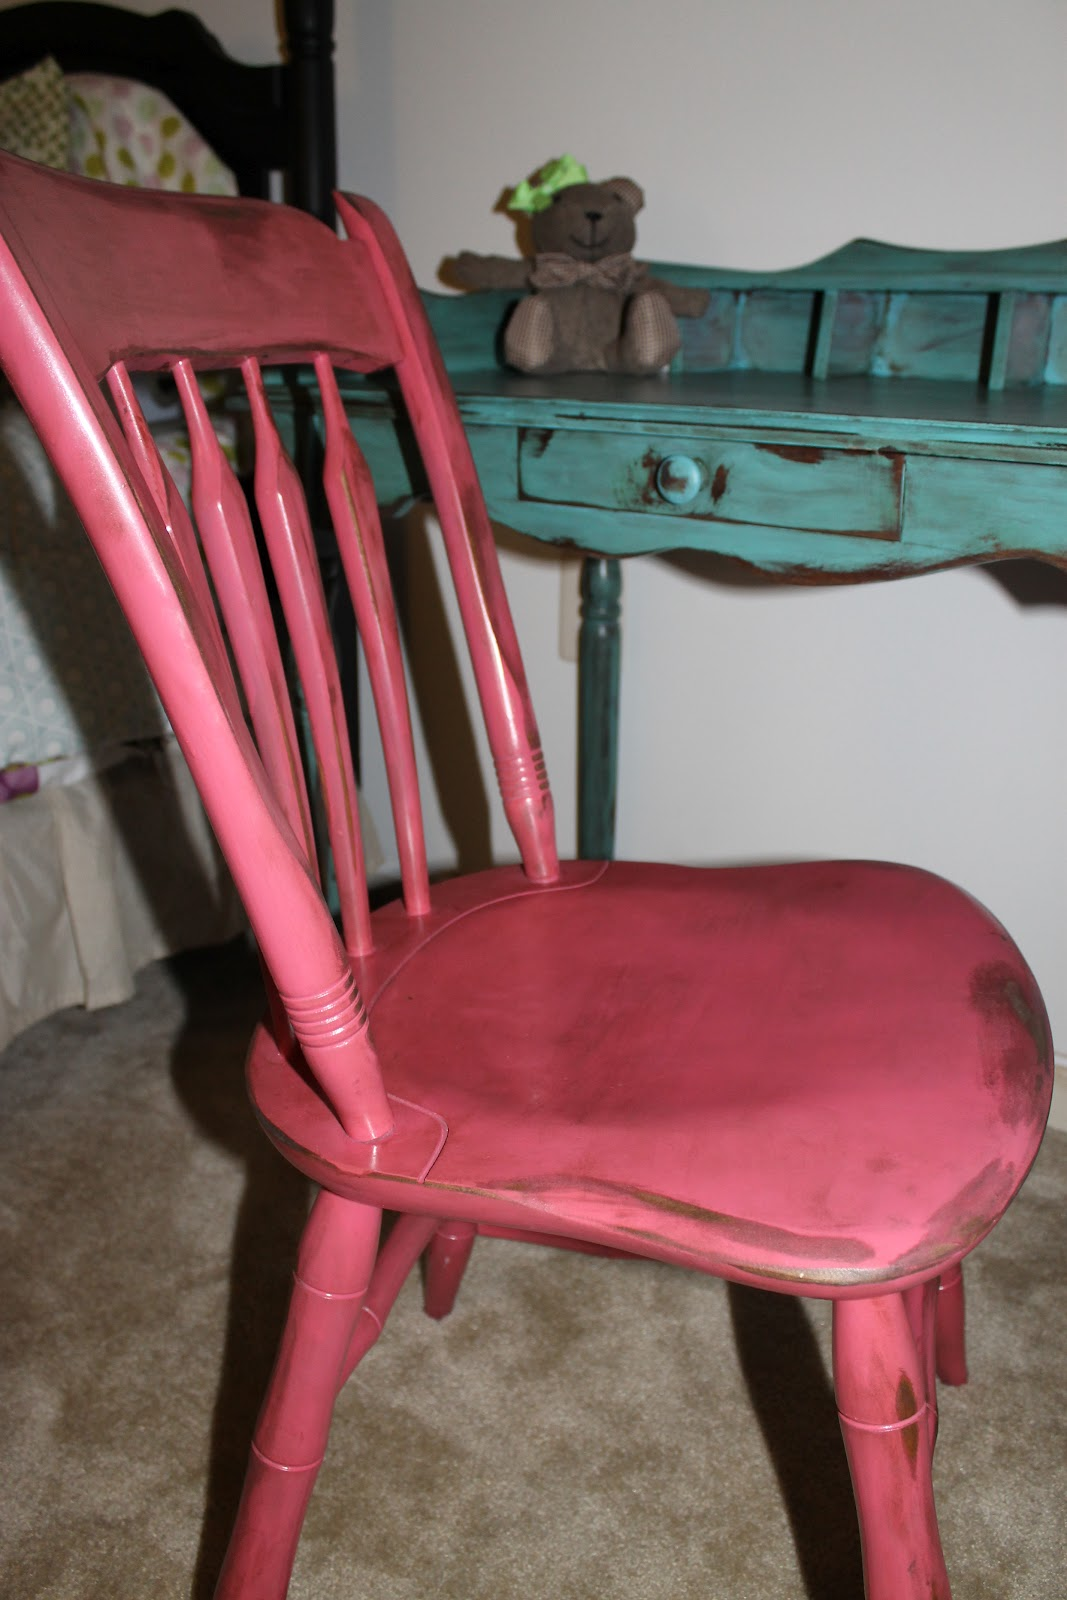 hot pink office chair swivel glides for wood floors and paint go together teal